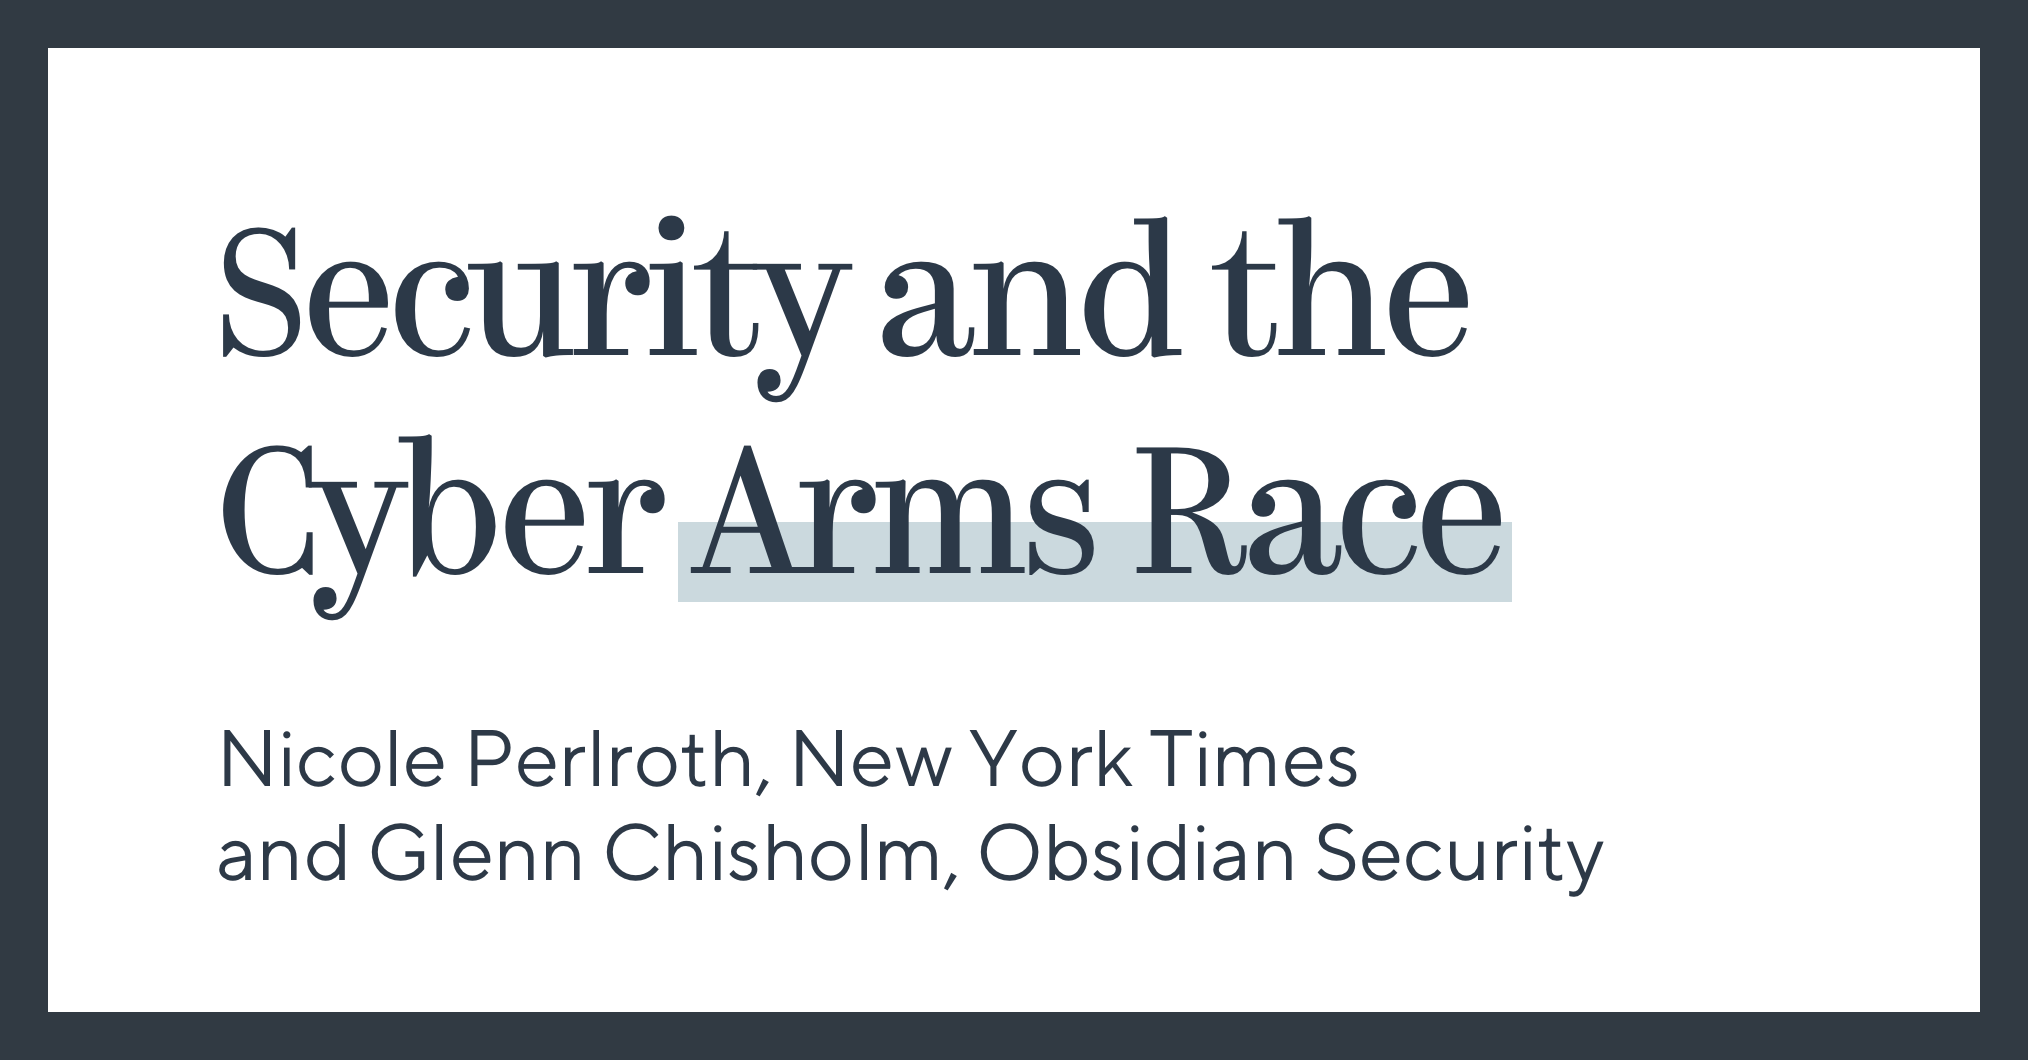 Security and the Cyber Arms Race